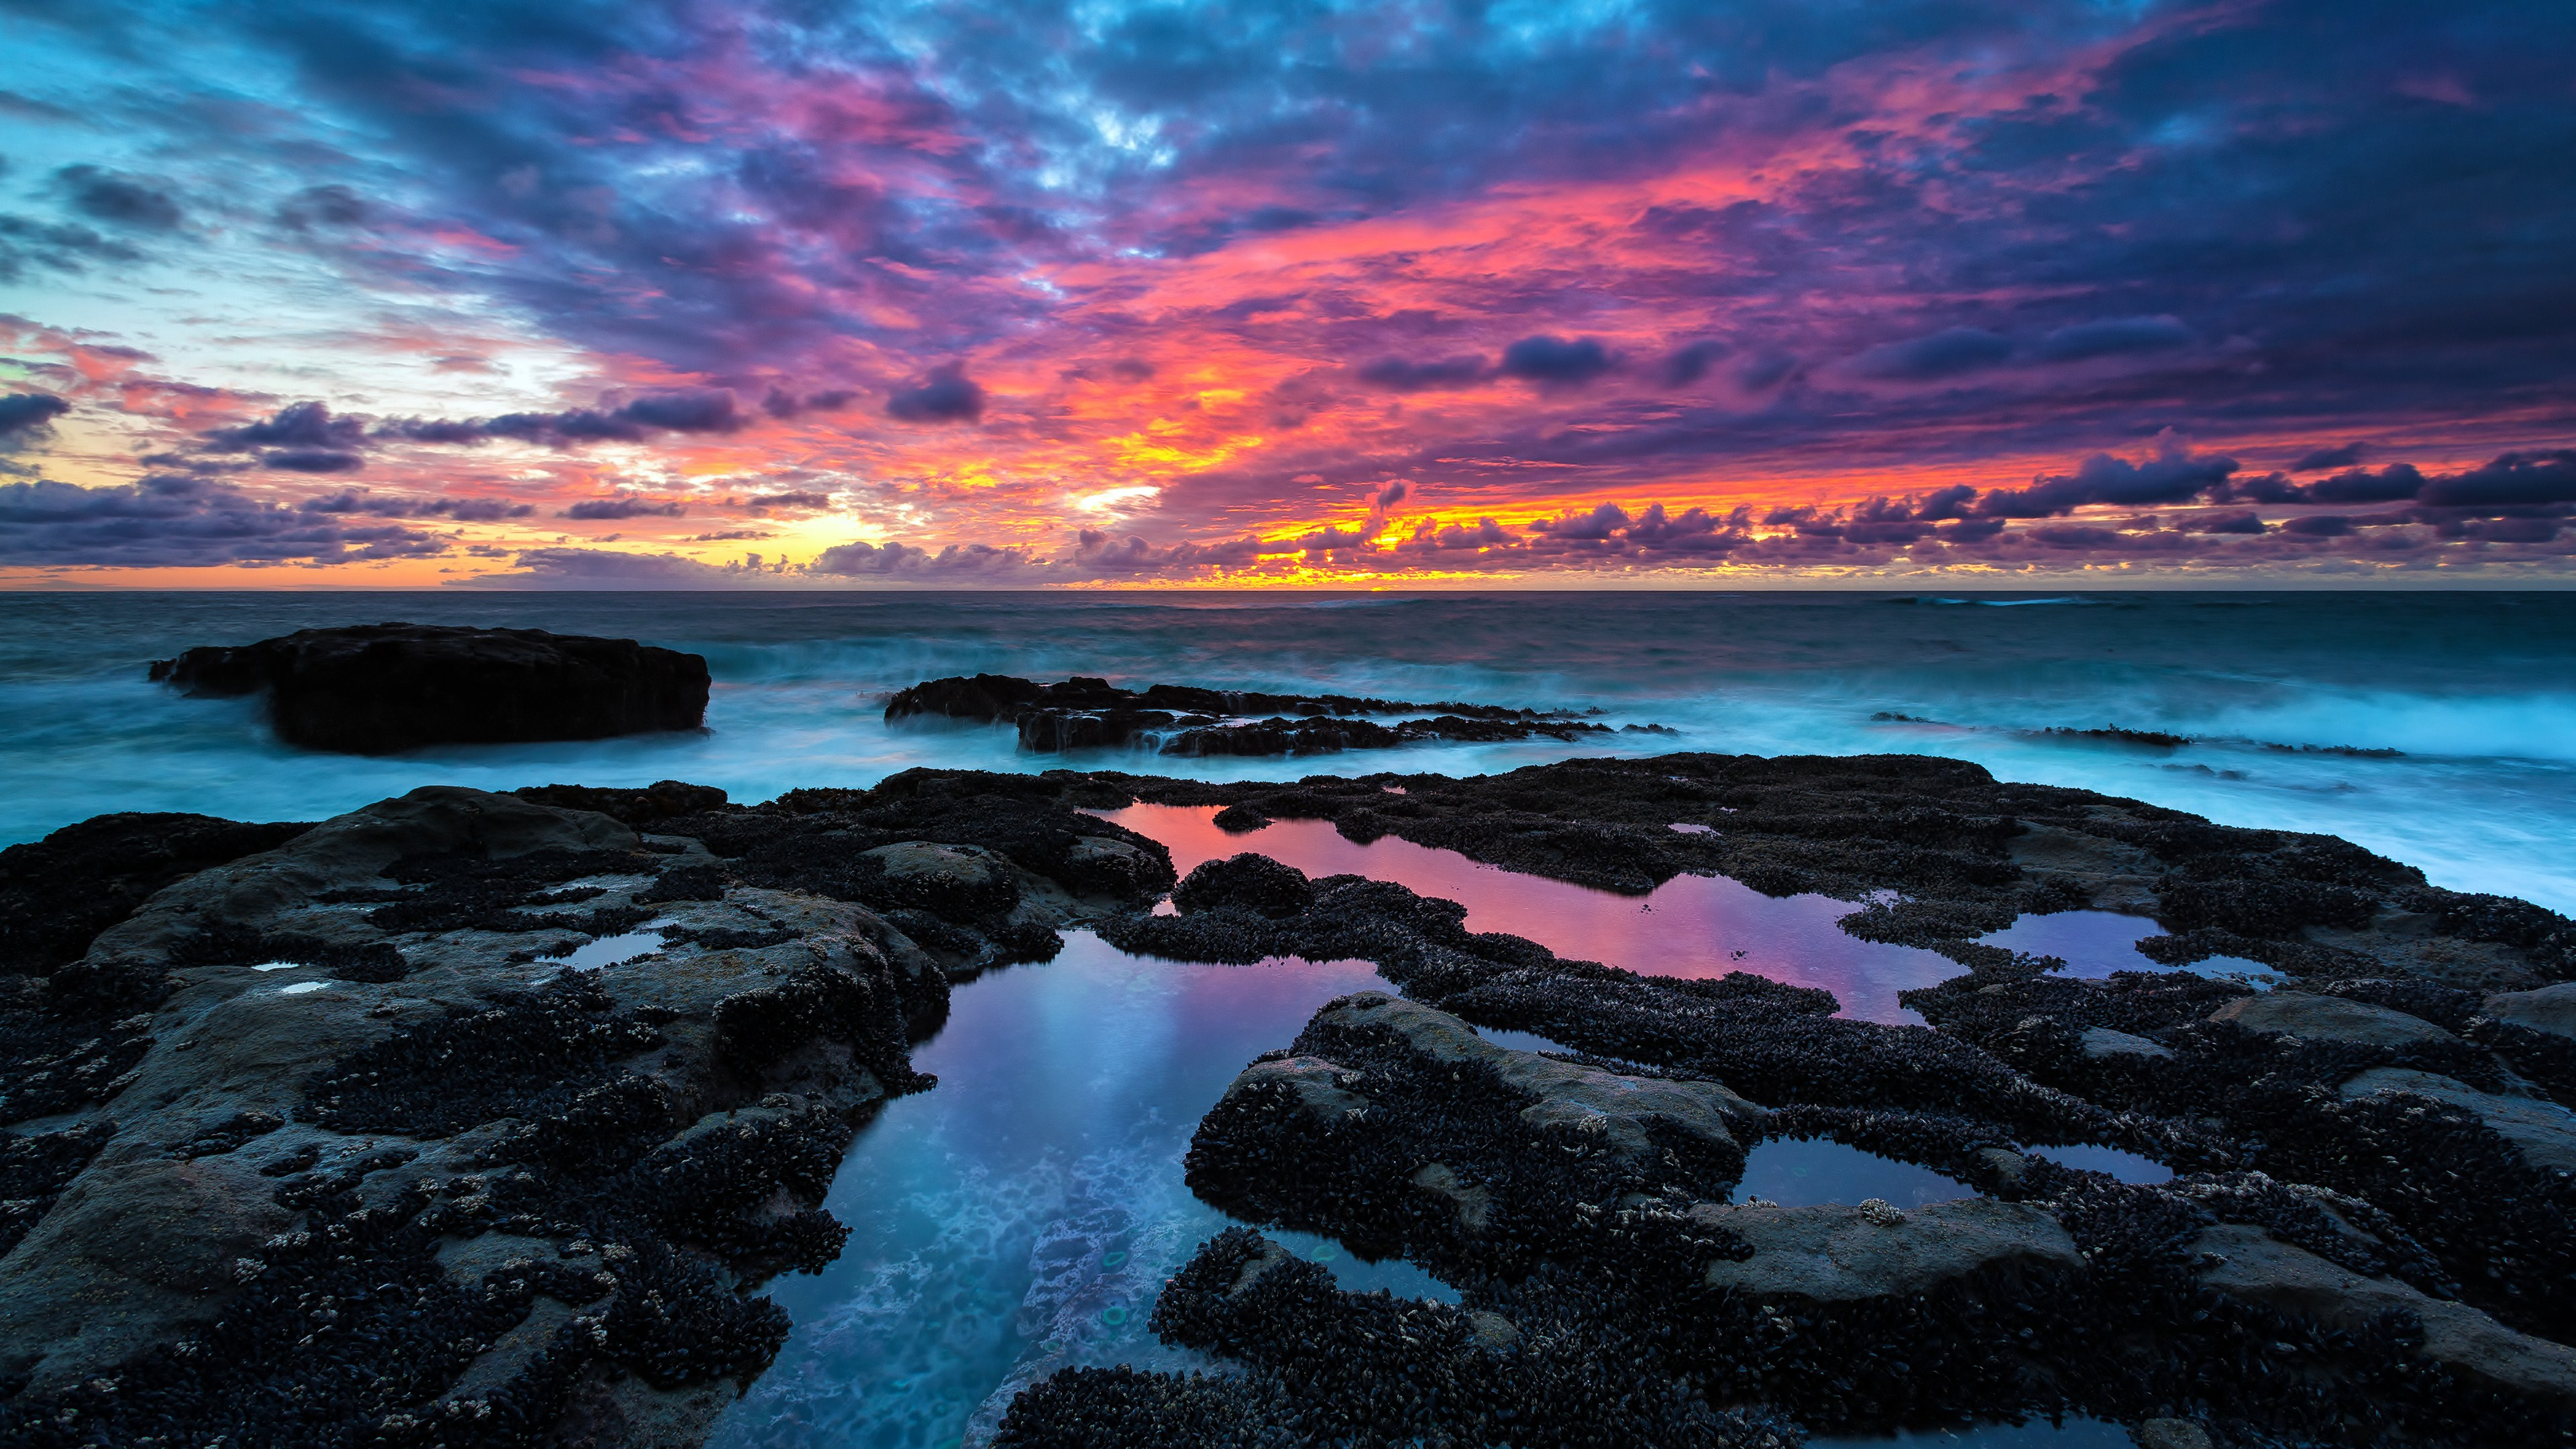 Free Download 4k Sunset 272 Ultra Hd Wallpapers Wide Screen